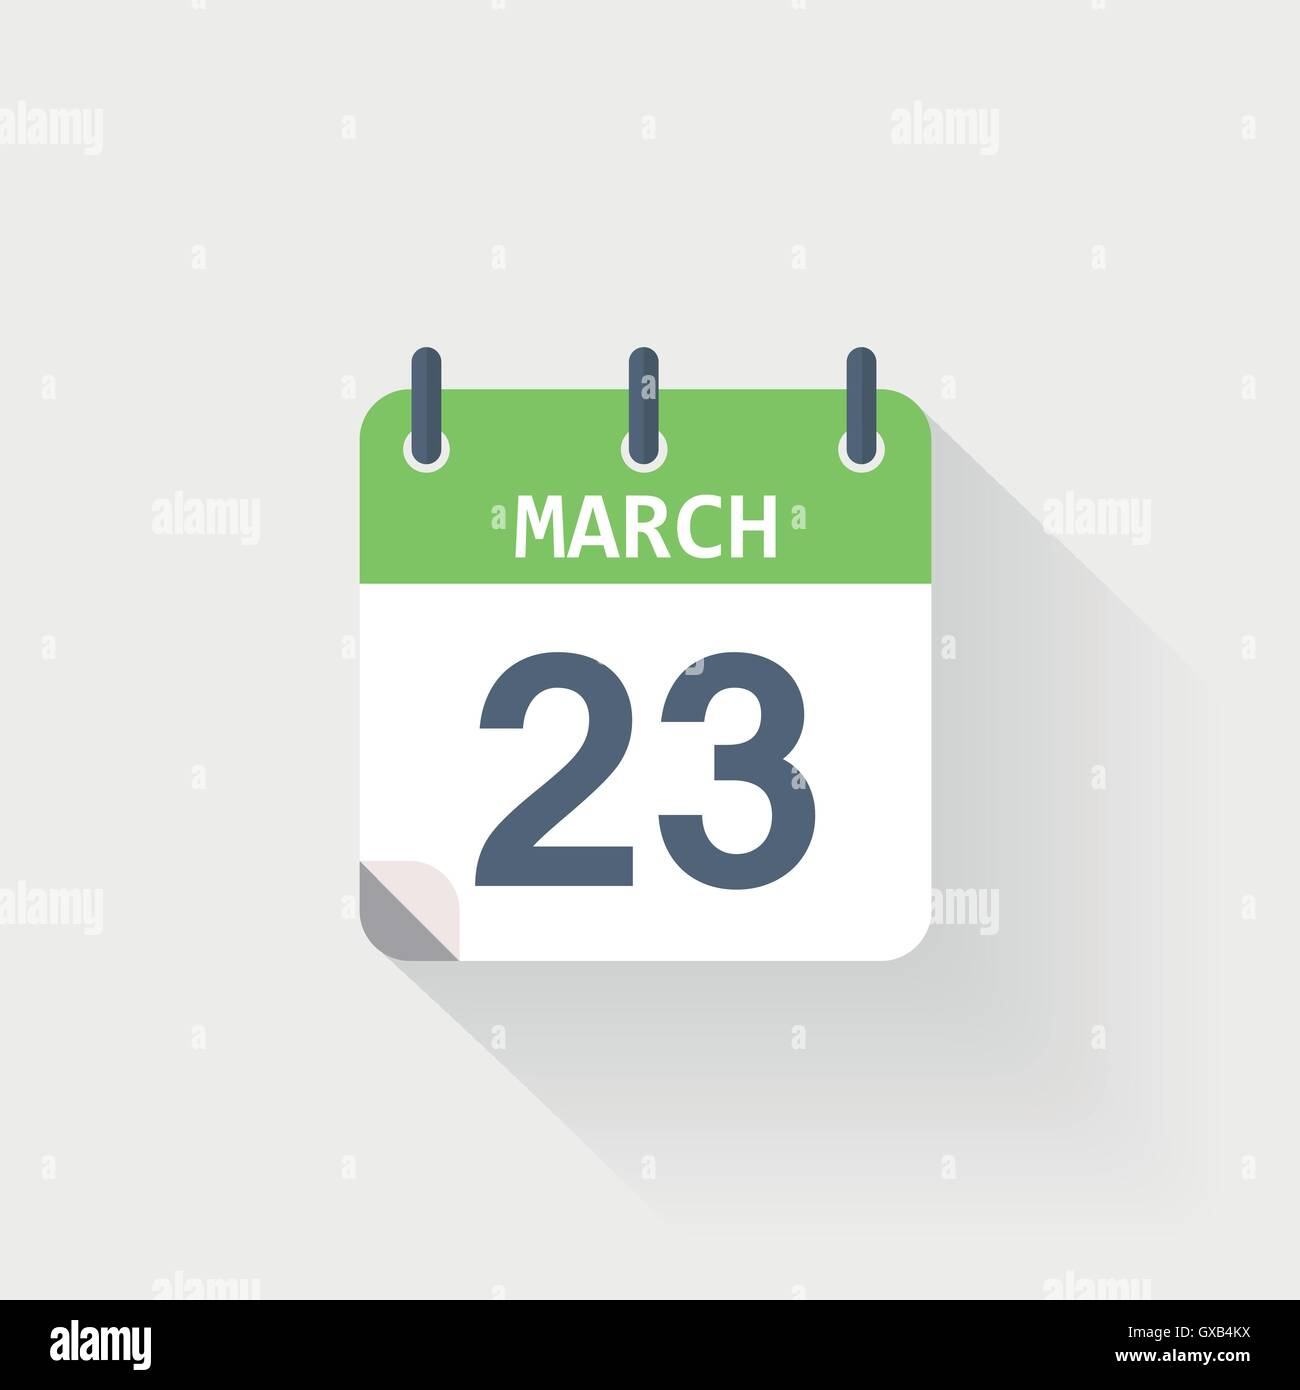 23 march calendar icon on grey background - Stock Vector